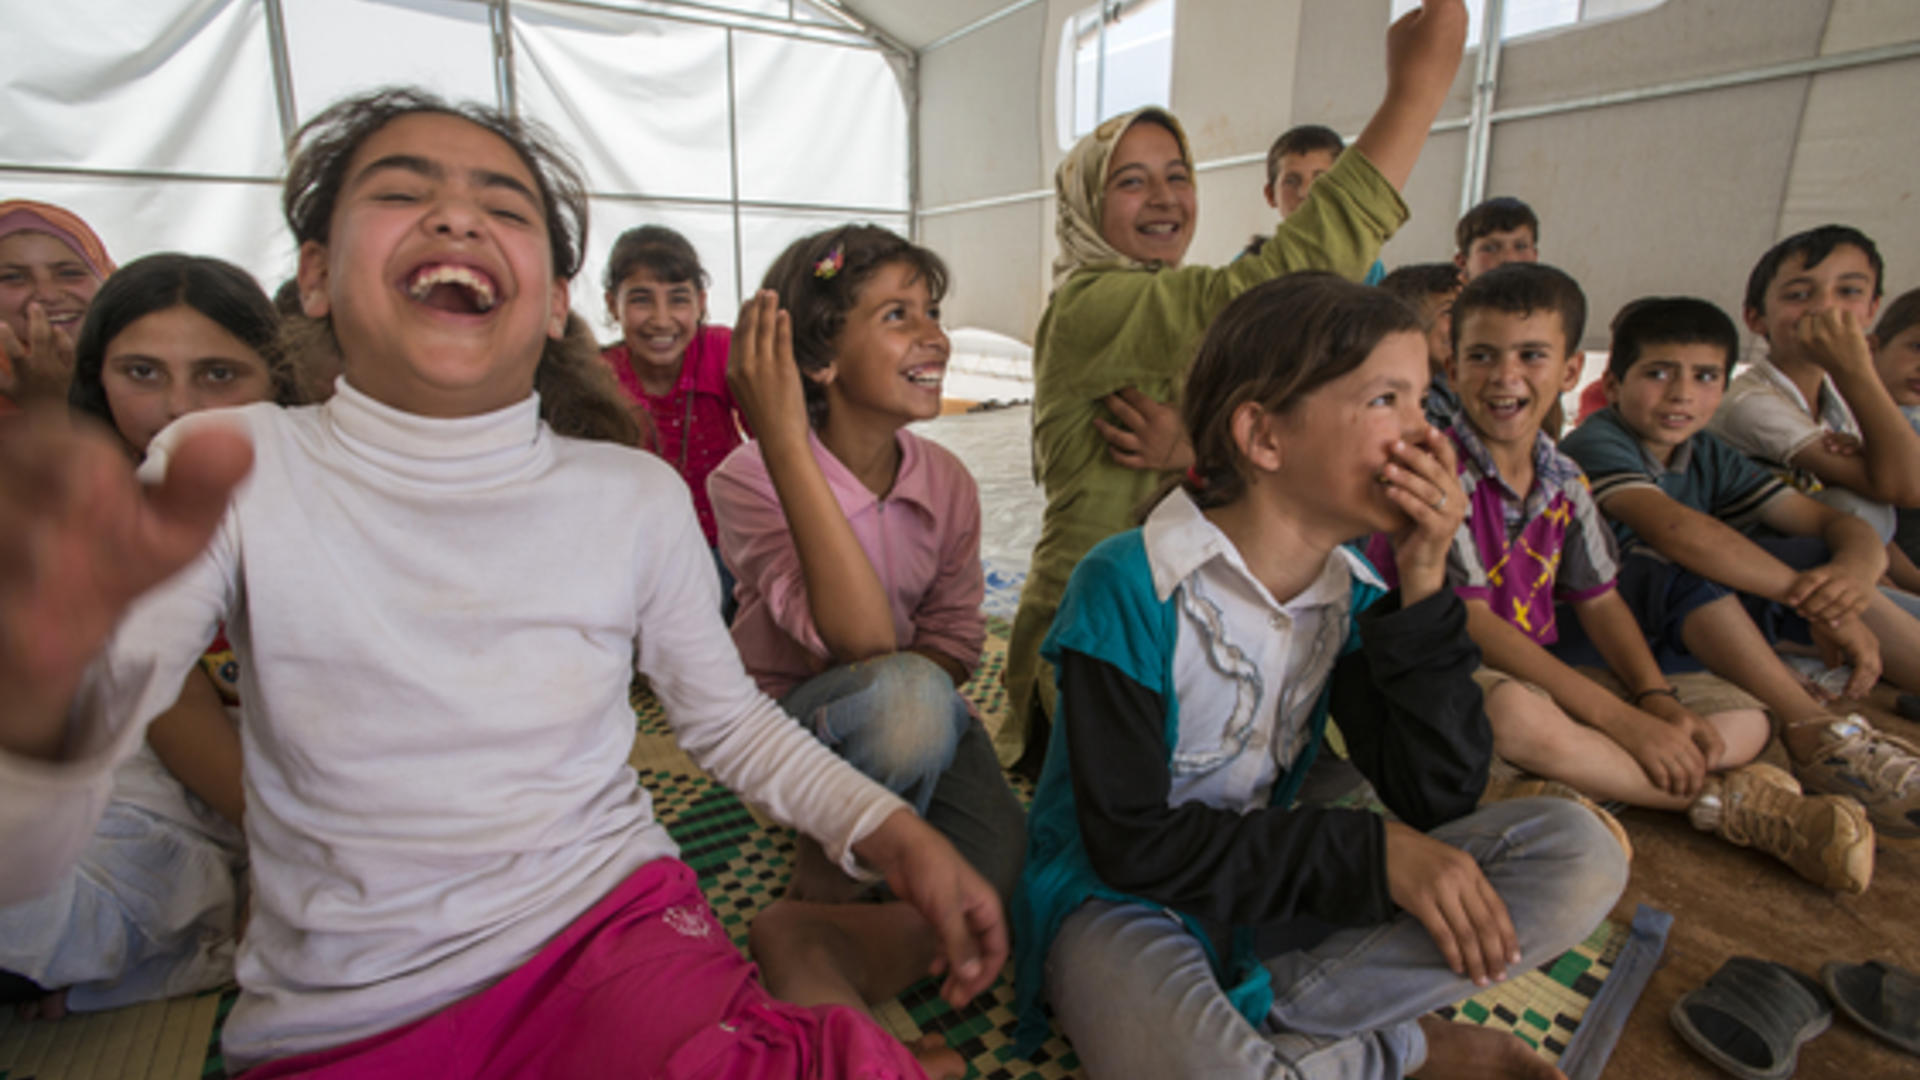 Syrian children in an IRC healing classroom tent